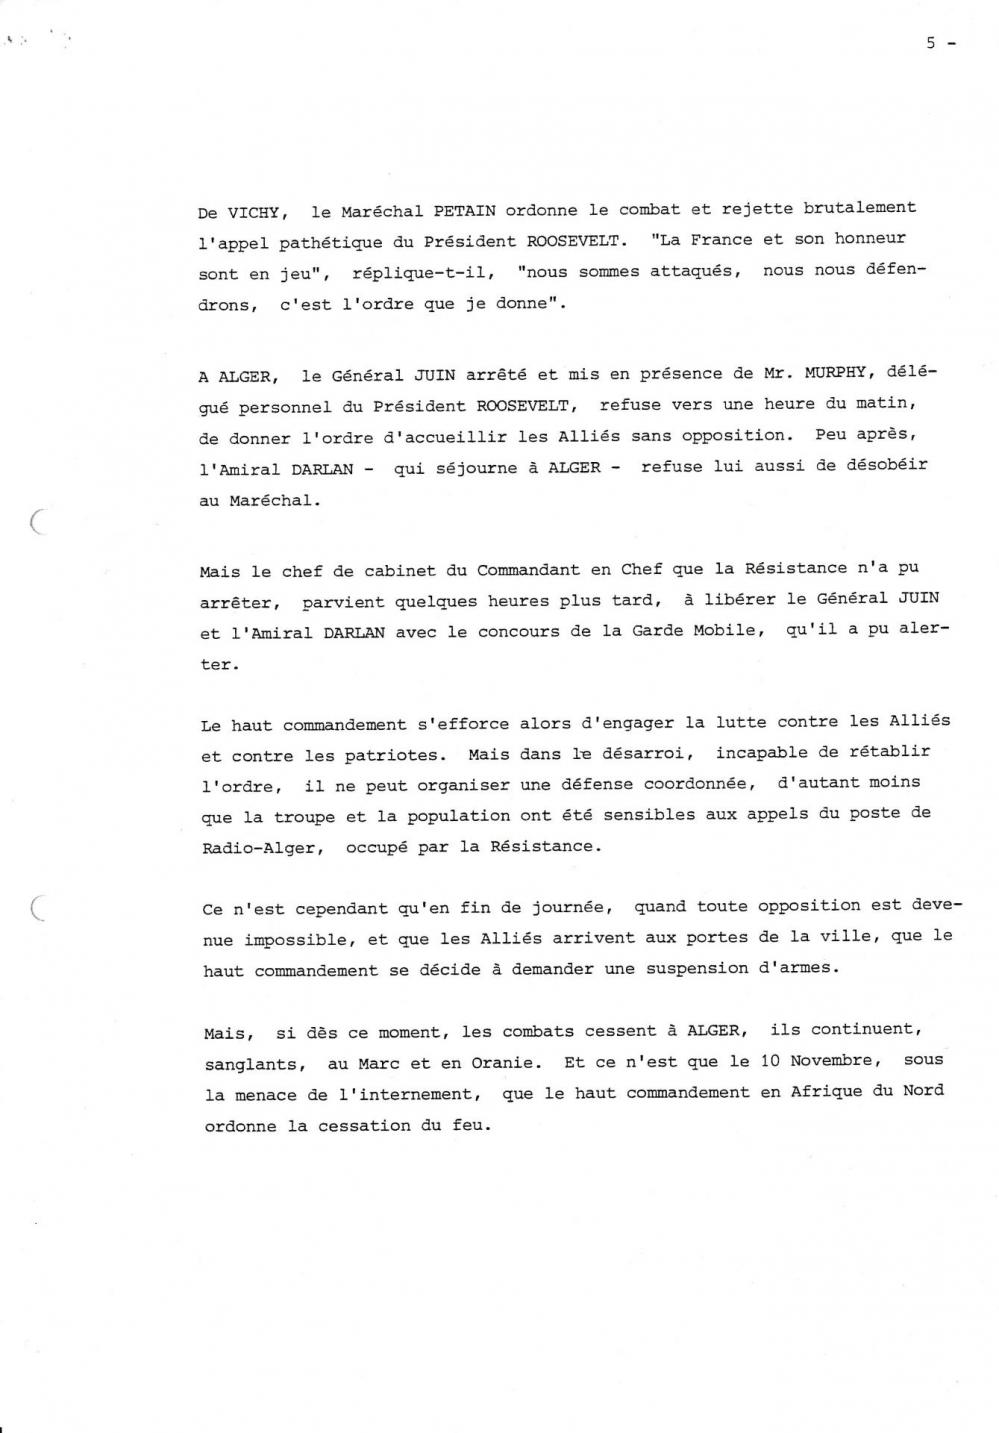 General jousse page 5jpg